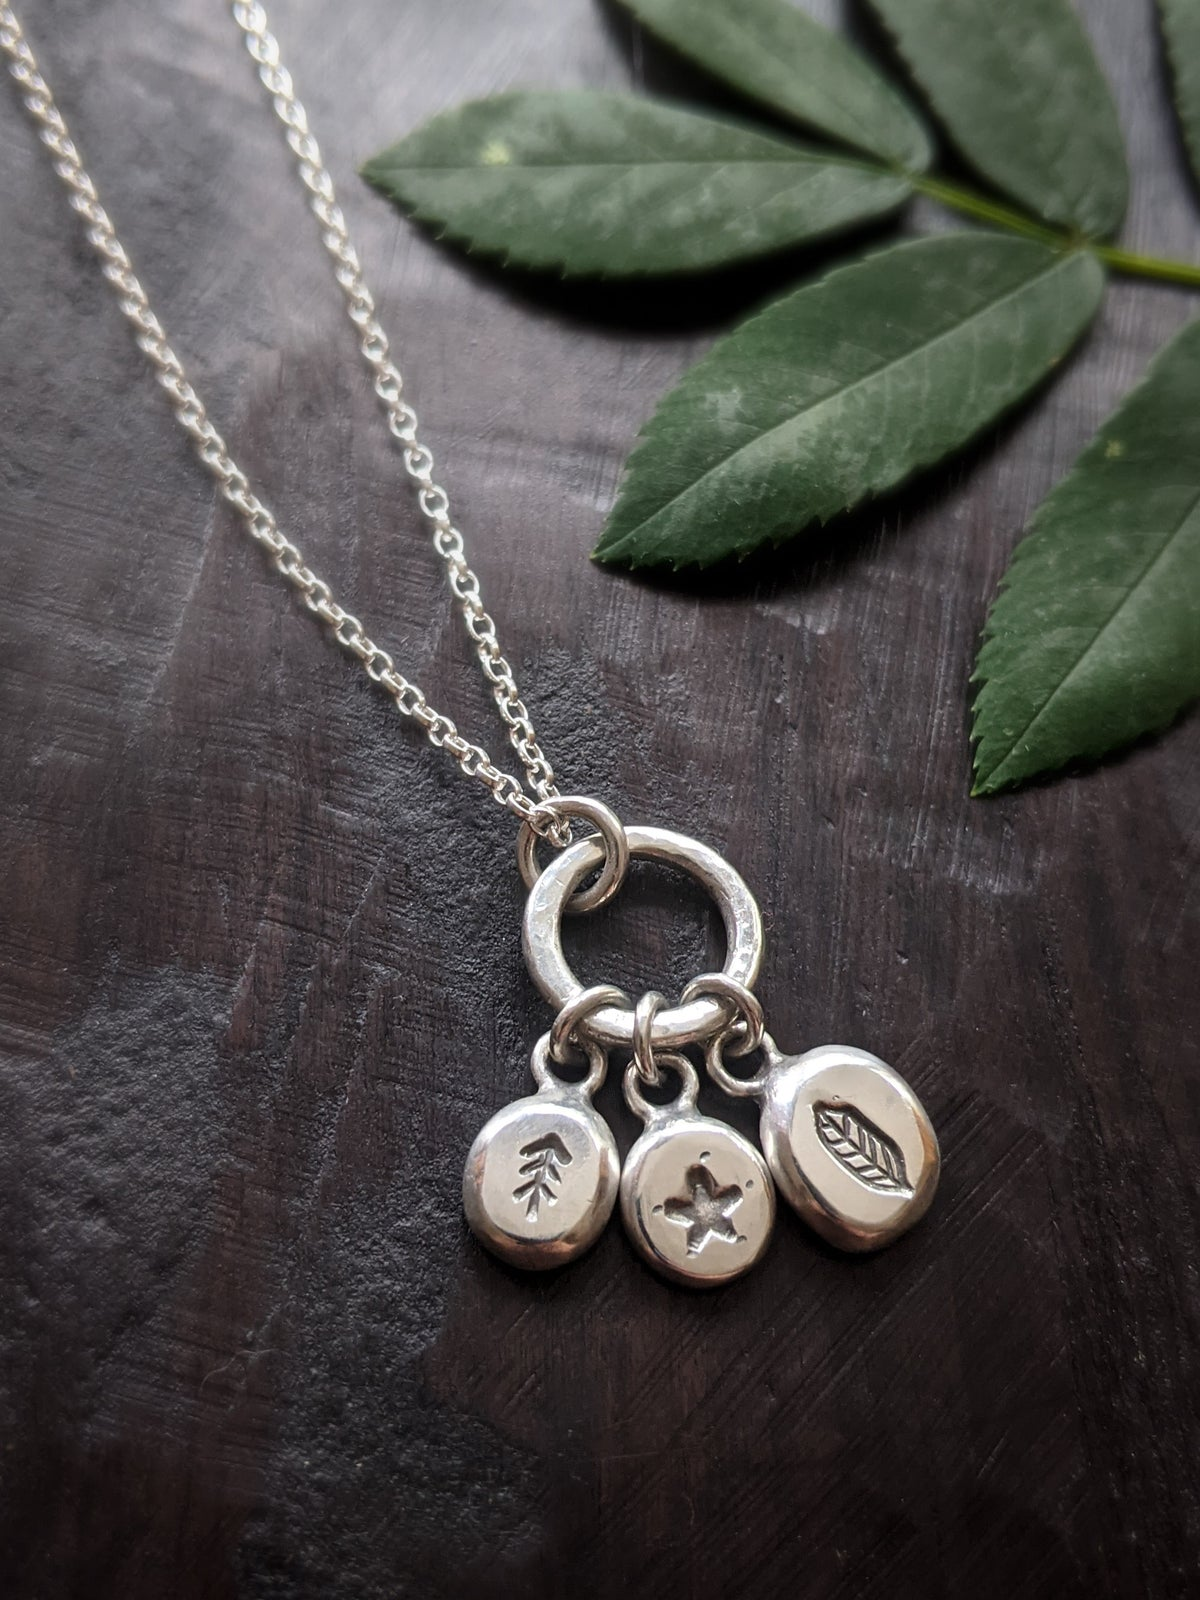 Into the Forest primal pebbles recycled silver pendant